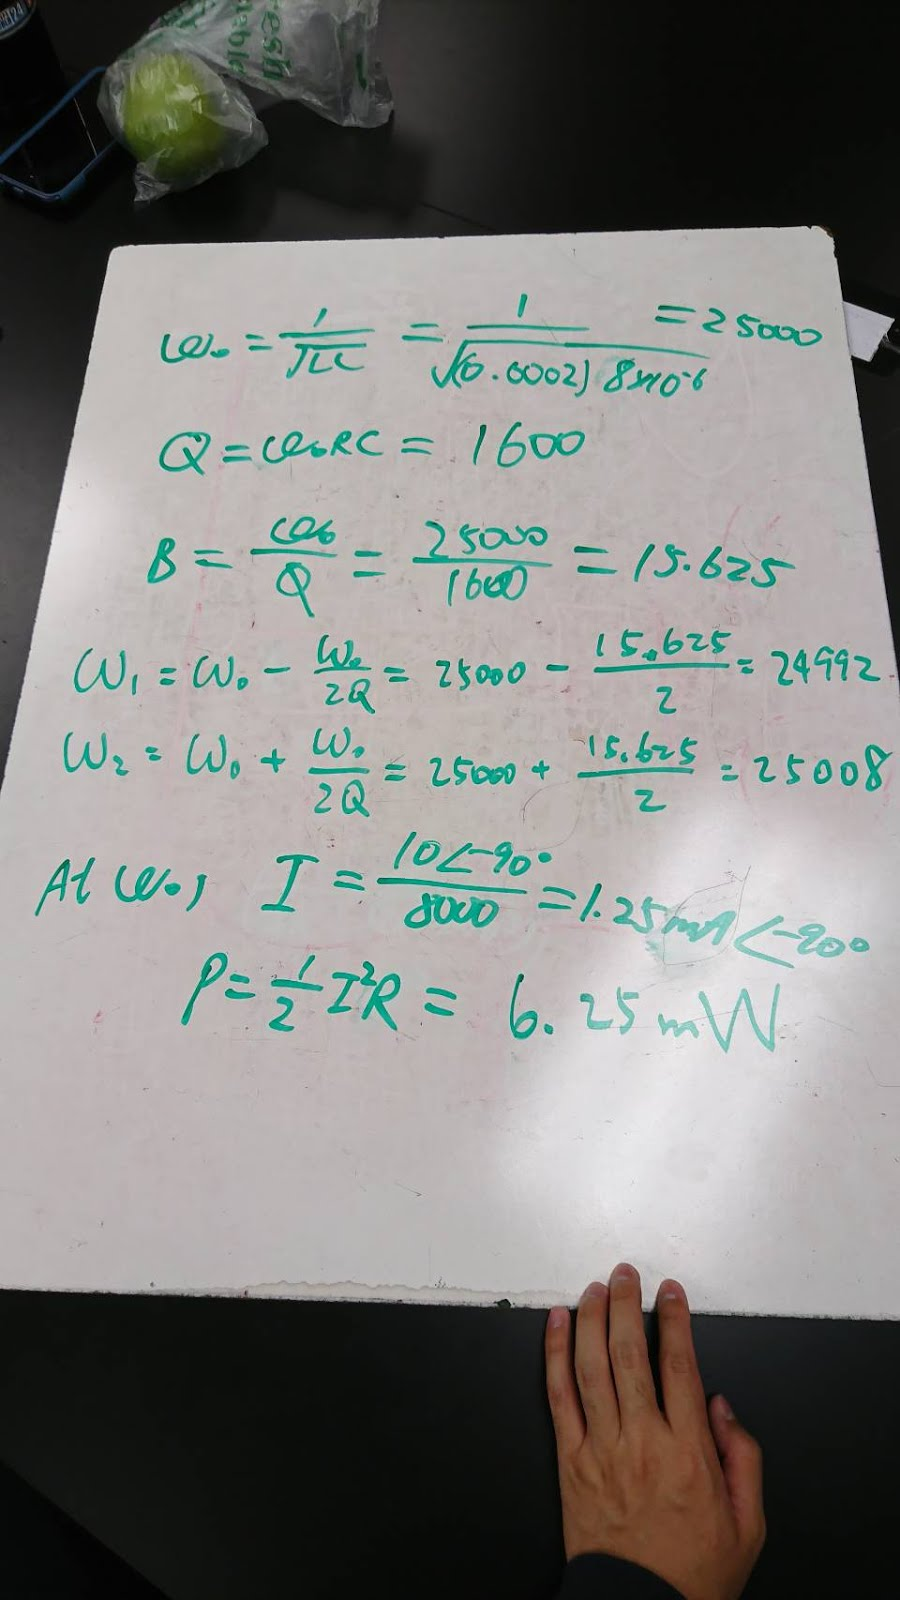 Engineering 44 Iwu Create Bandpass And Bandreject Filters With Rlc Series Circuits Band Pass Filter Will Middle Frequency R In Stop Other Than The Lc